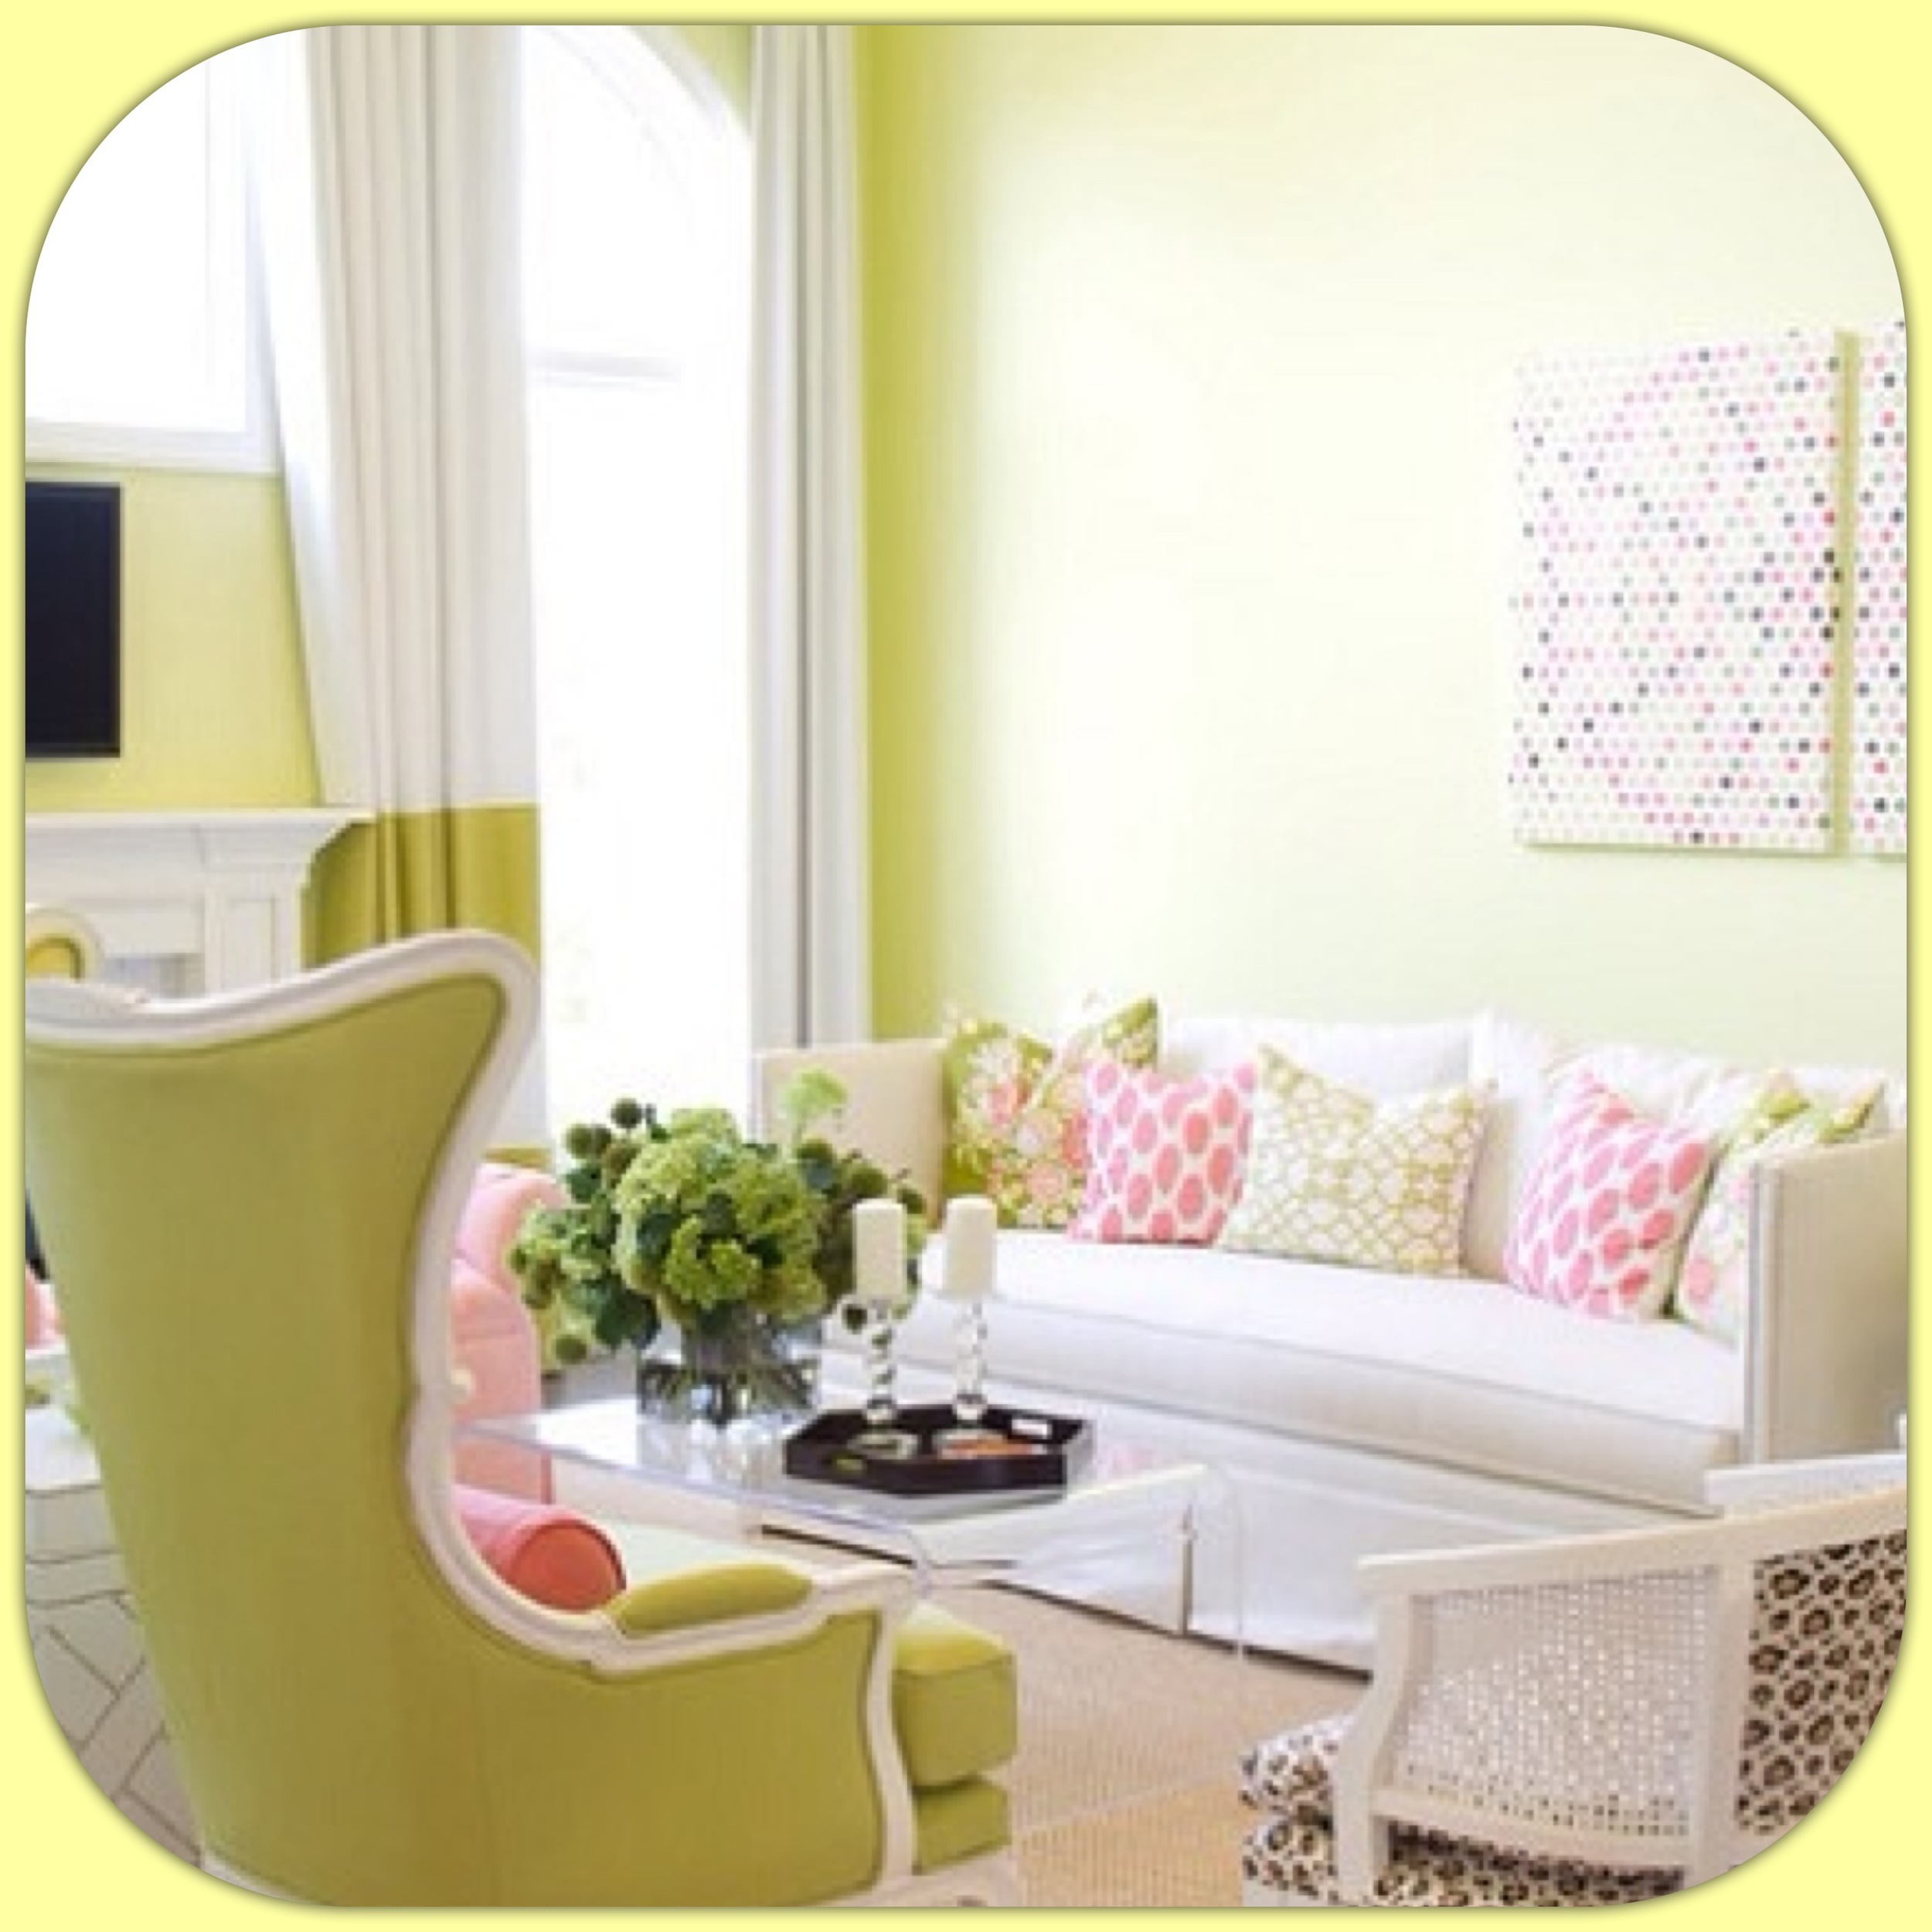 A room with bright warm colors.